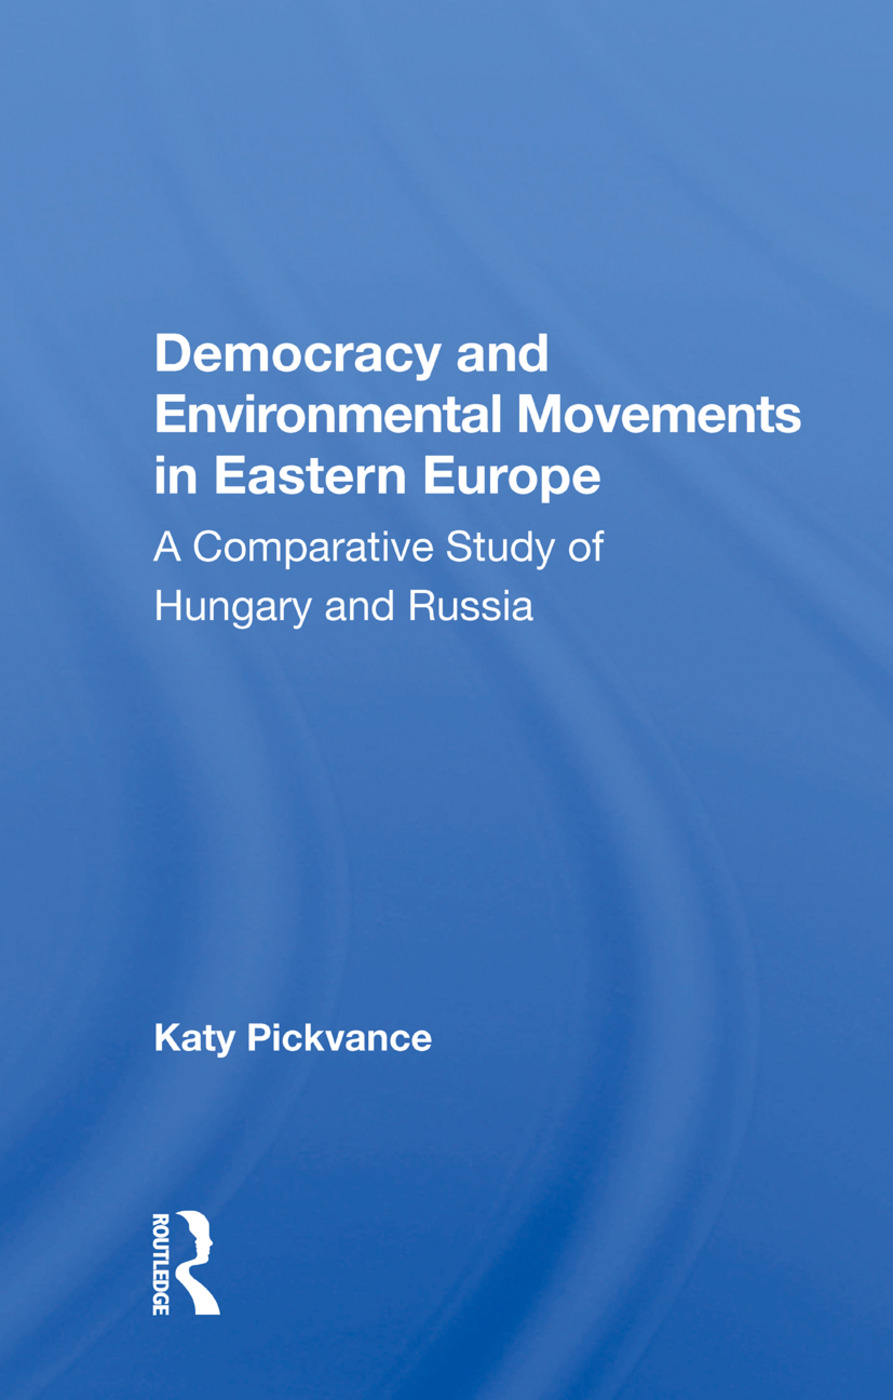 Democracy and Environmental Movements in Eastern Europe